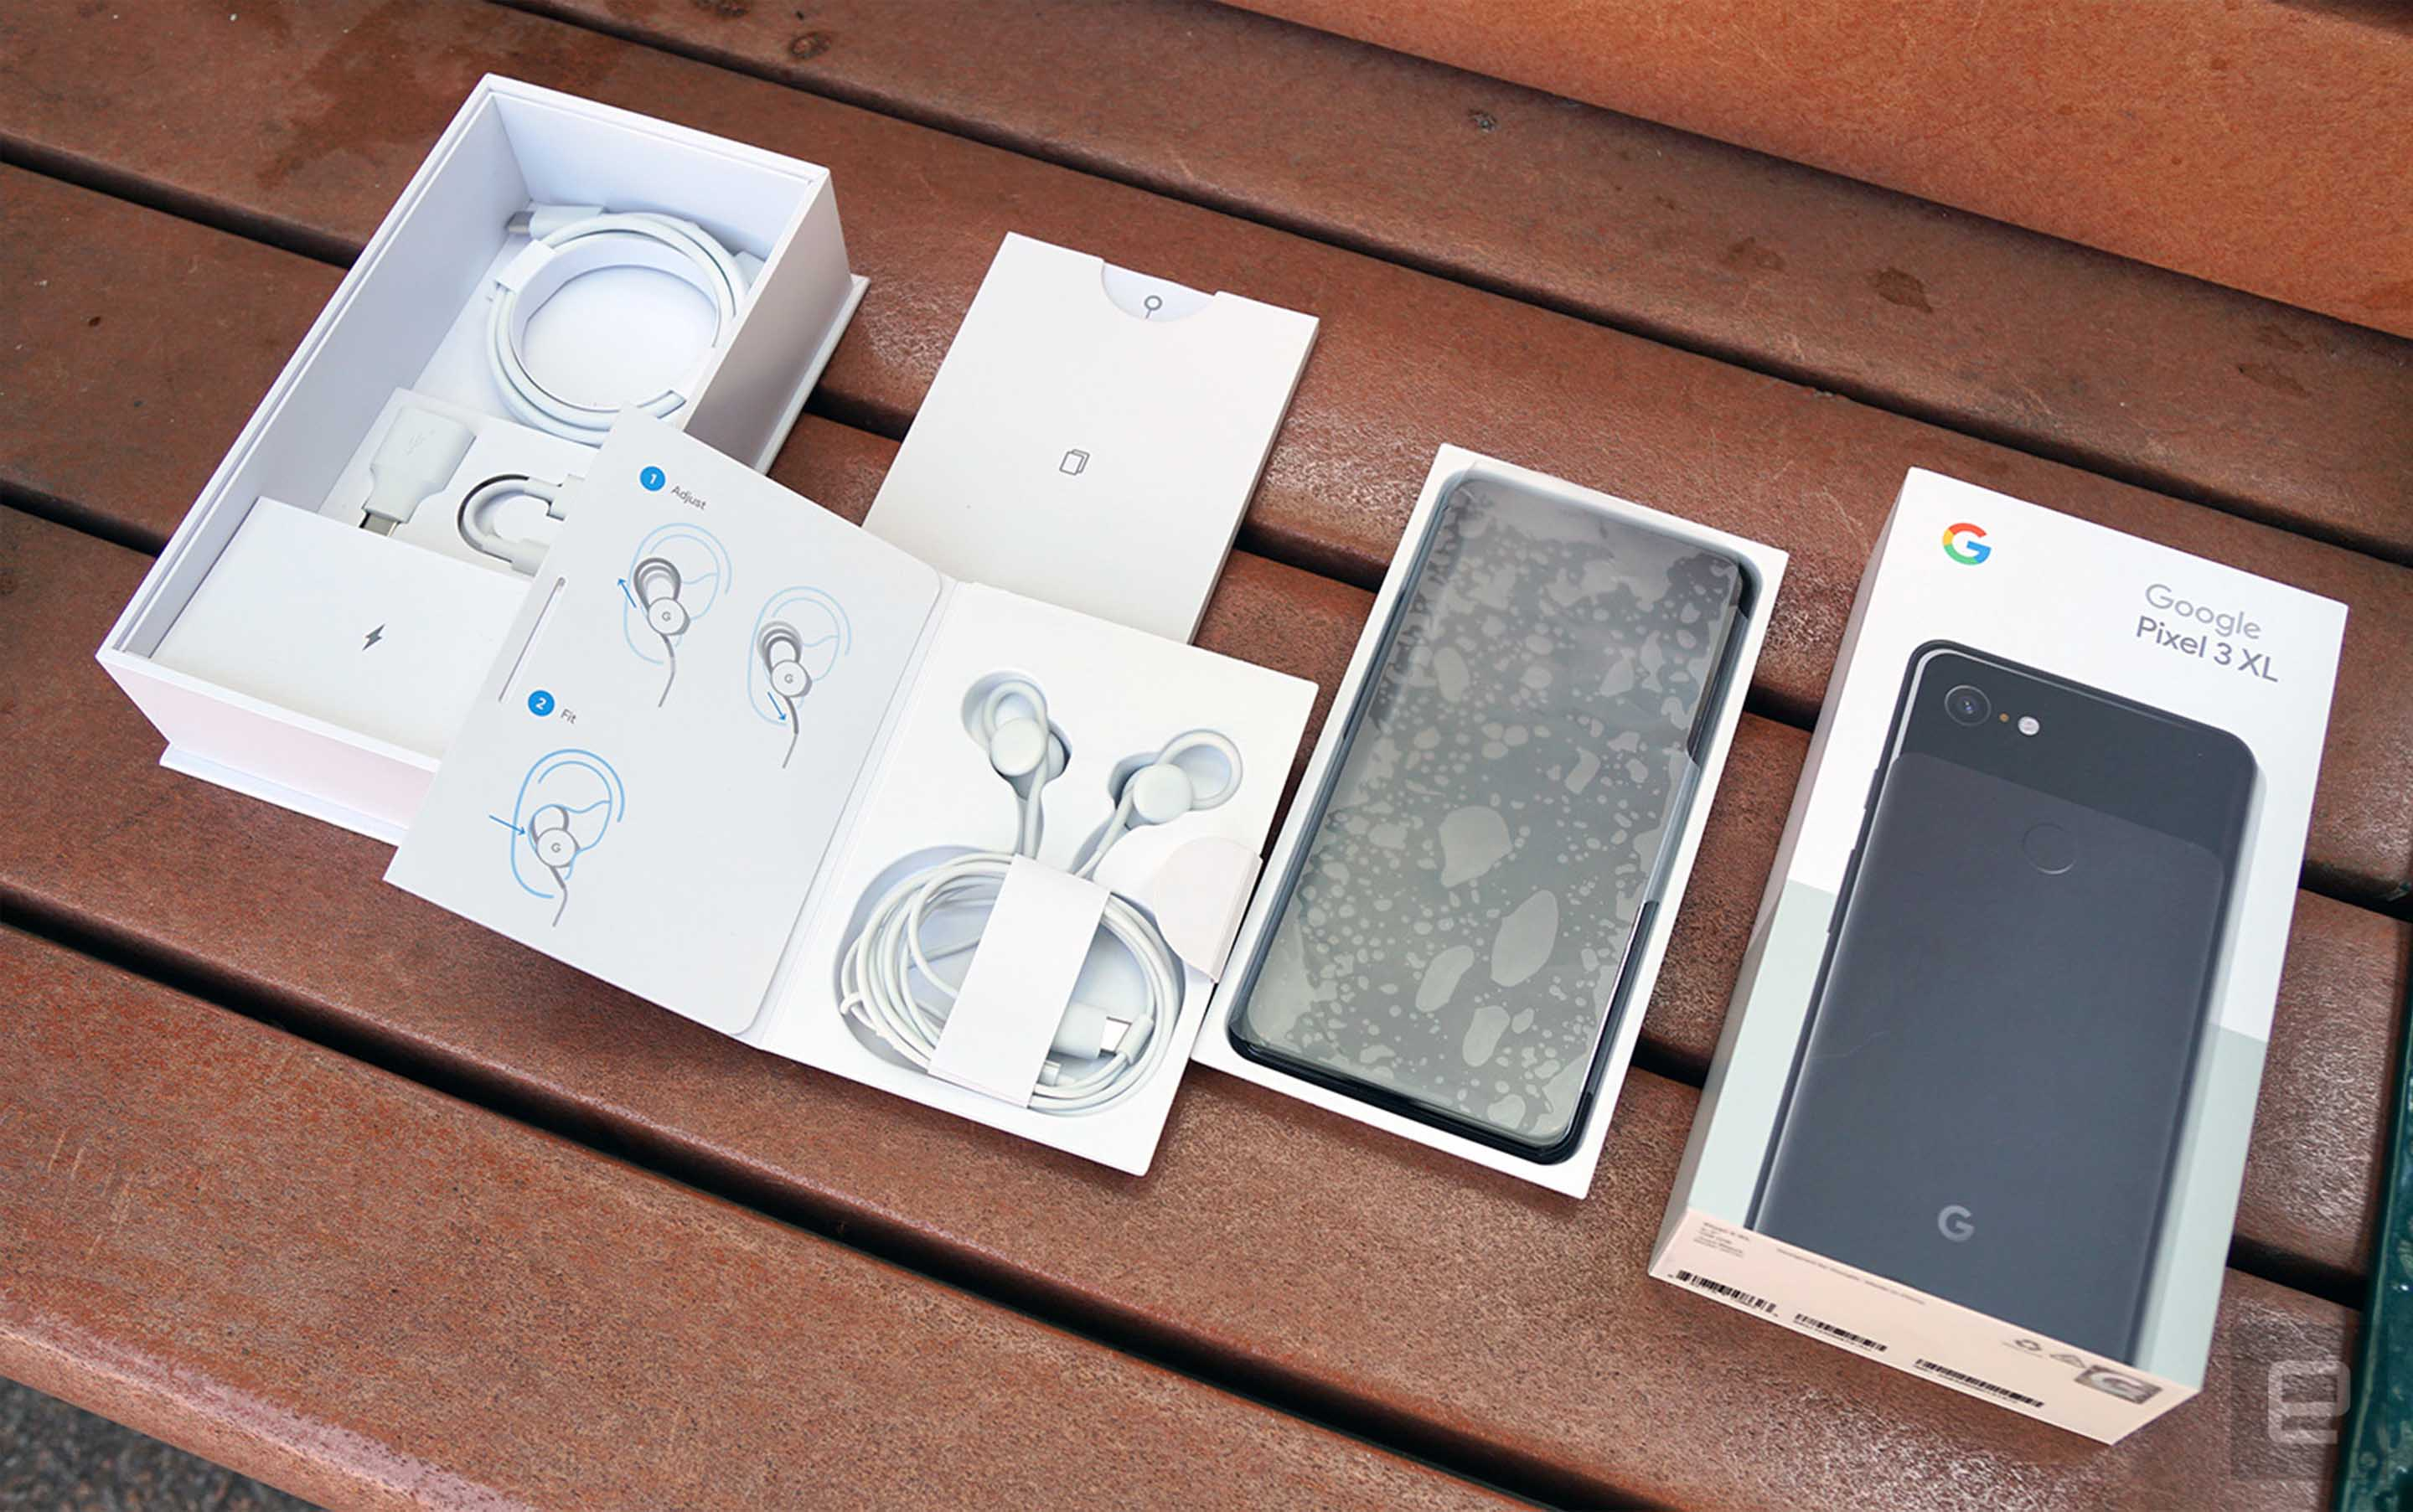 Pixel 3 XL box and accessories